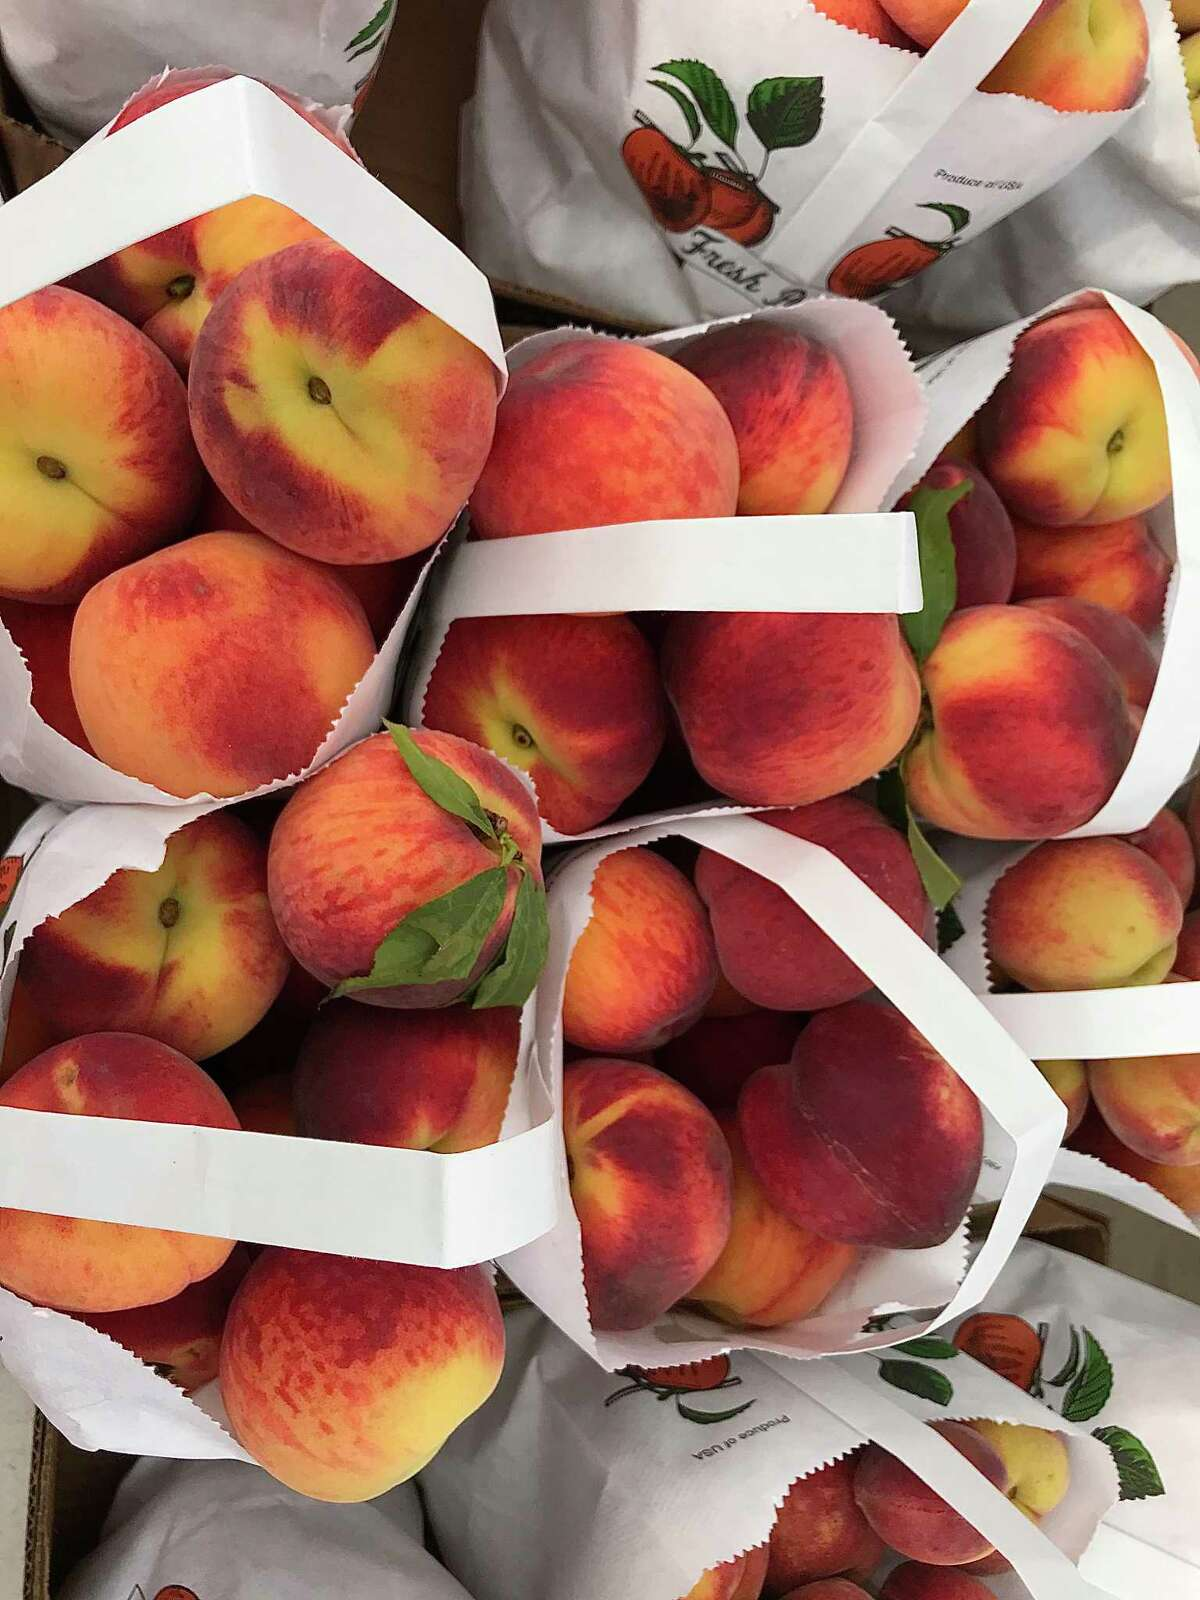 Texas peaches from Lightsey Farms in Mexia are available at the Urban Harvest Farmers Market in Houston.